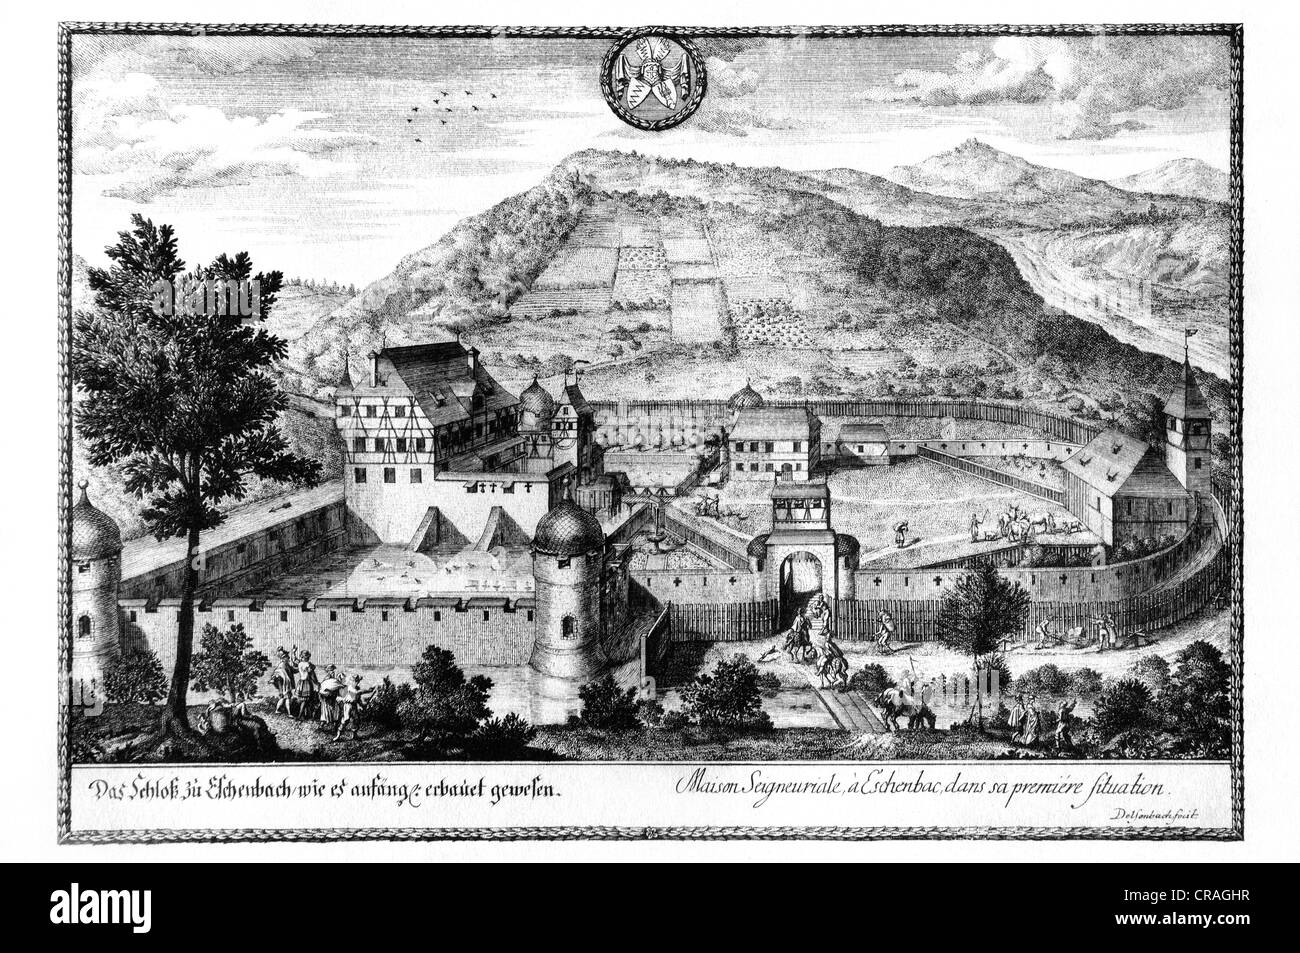 Eschenbach Castle as it was originally built, old woodcut from the 18th Century - Stock Image